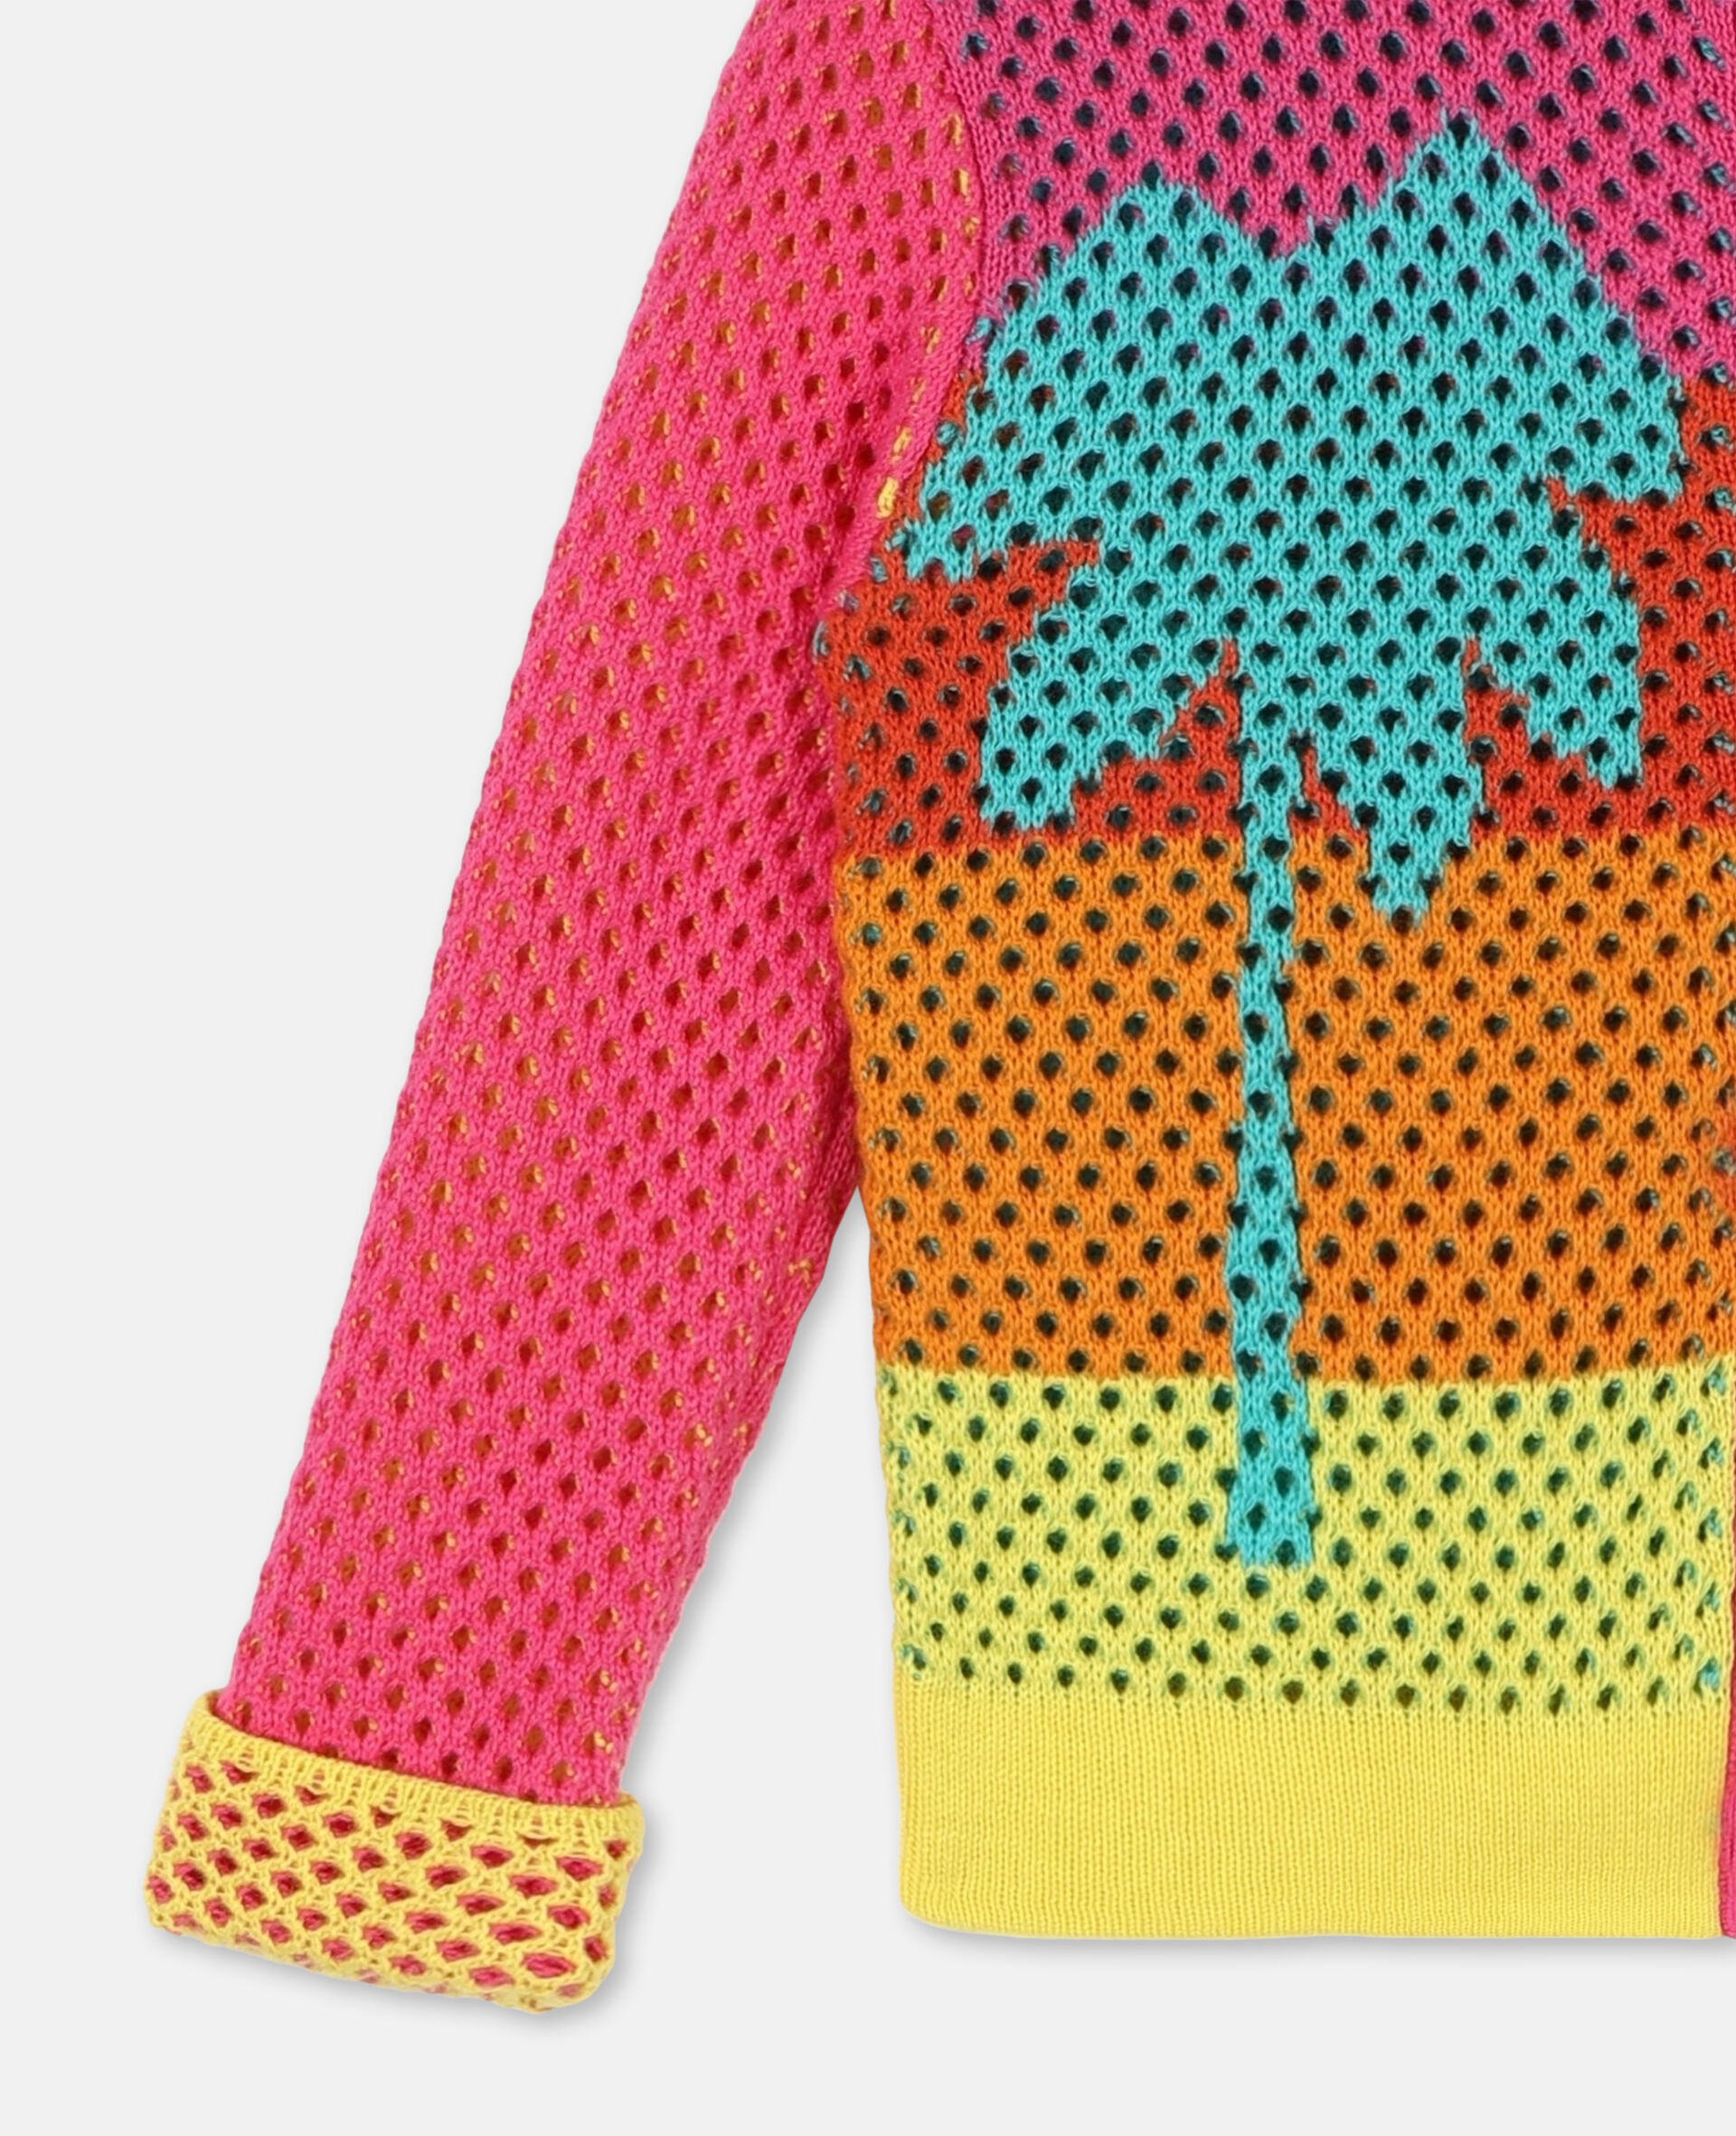 Intarsia Mesh Knit Cotton Cardigan-Multicolour-large image number 1